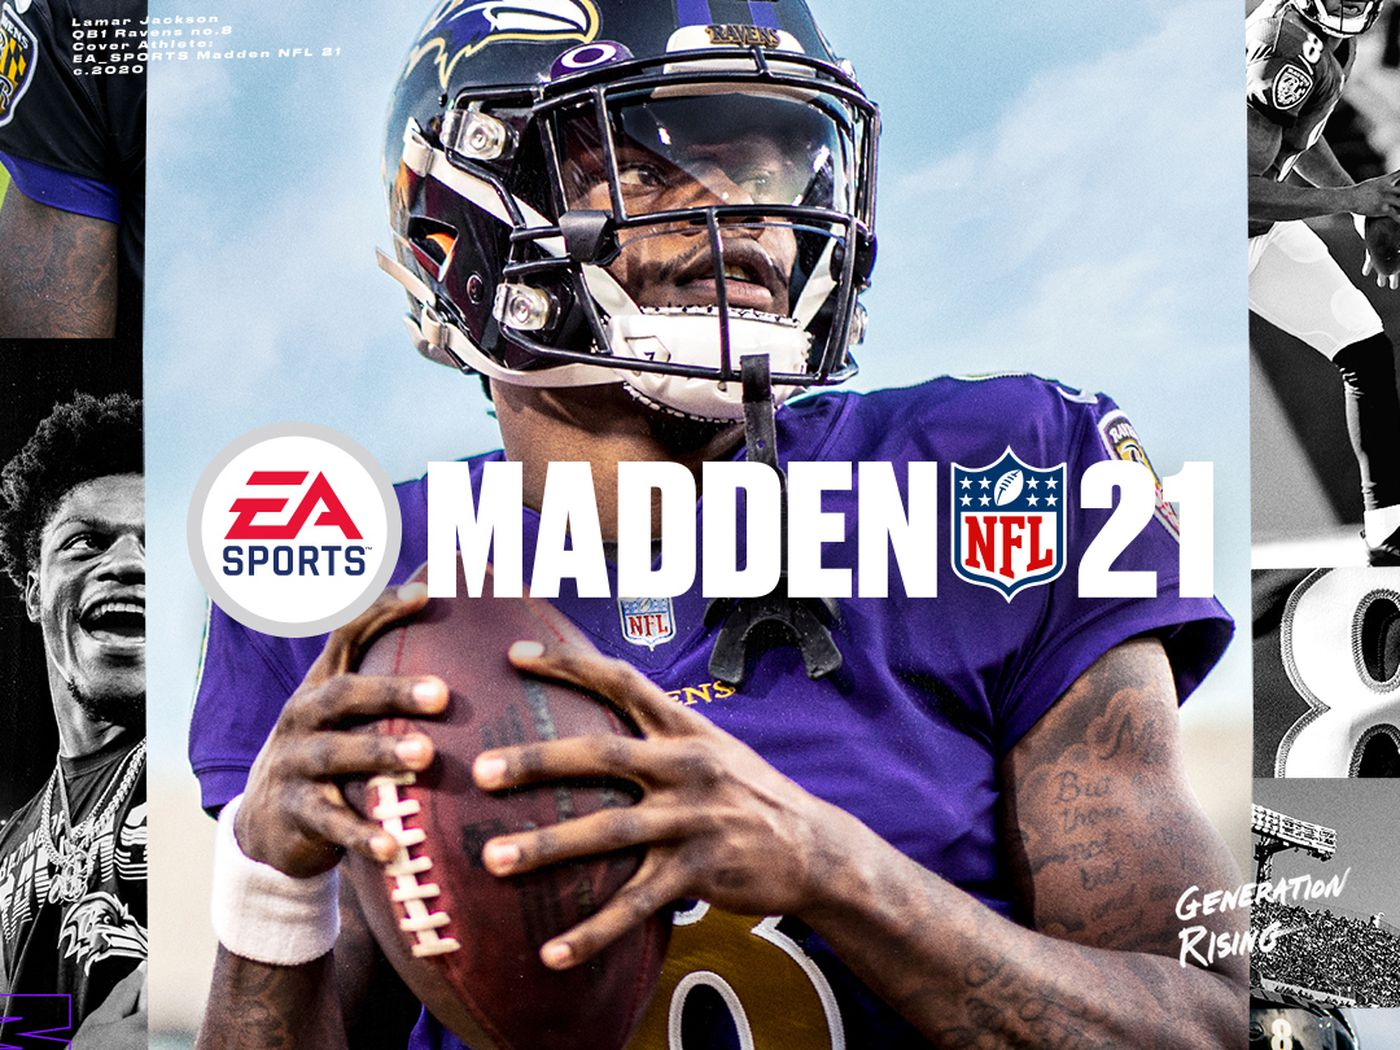 Madden 21 Cover Features Mvp Lamar Jackson Chicago Sun Times